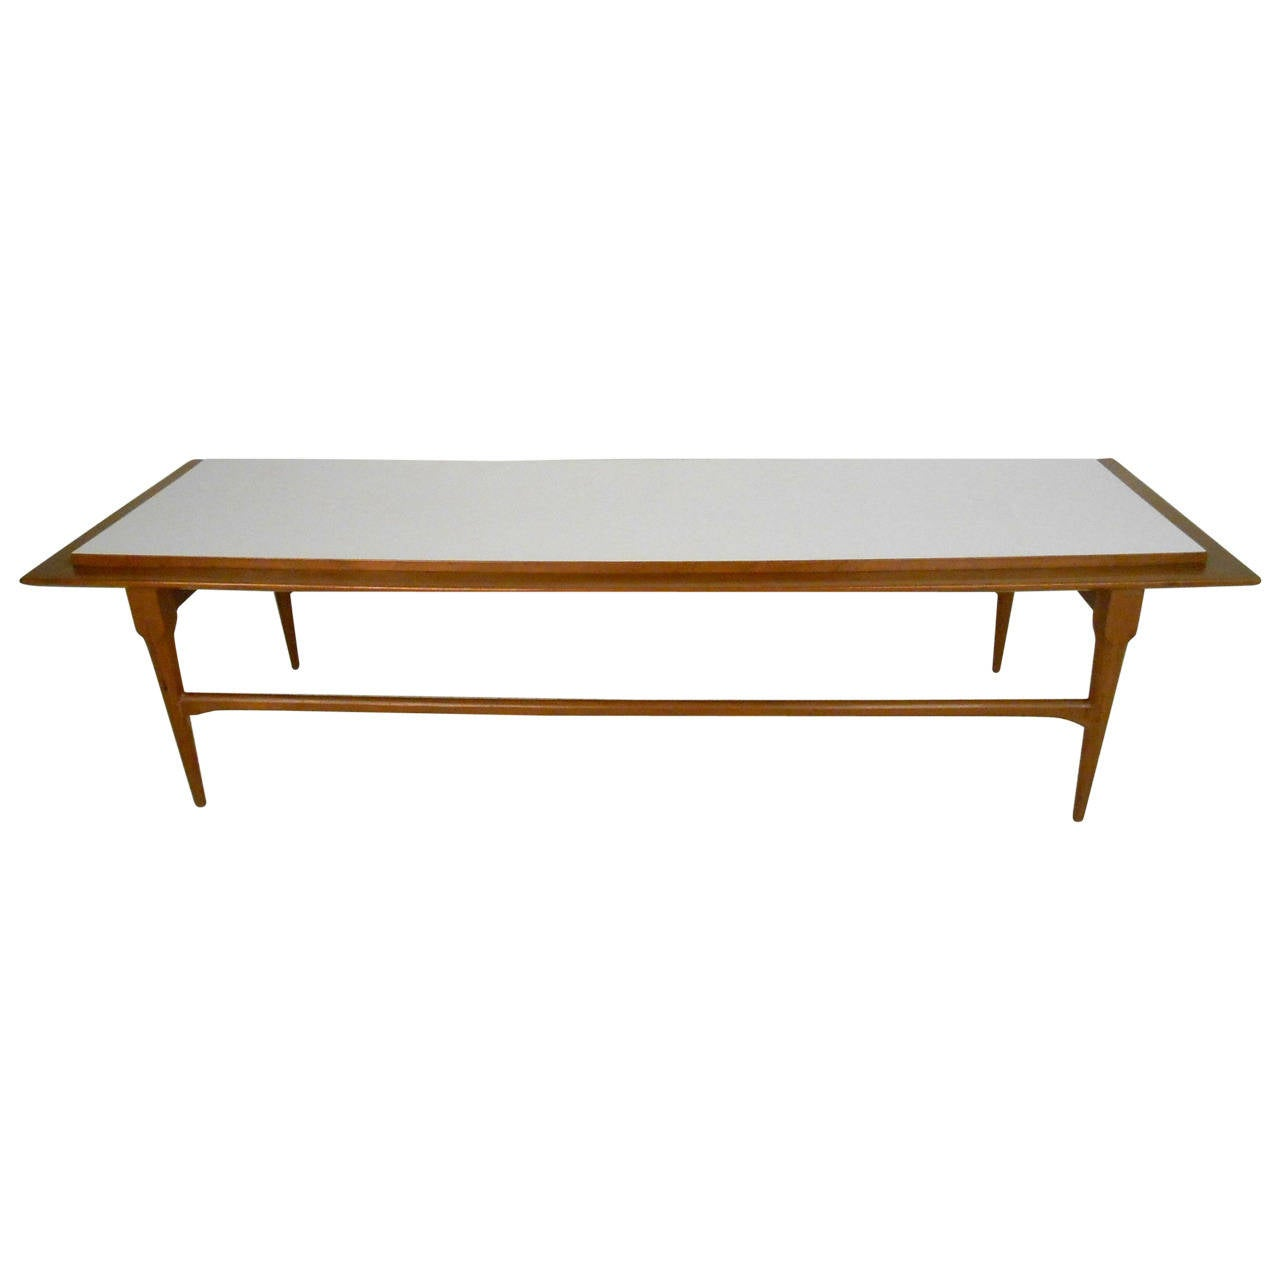 Mid century modern long coffee table for sale at 1stdibs for Mid century modern coffee table